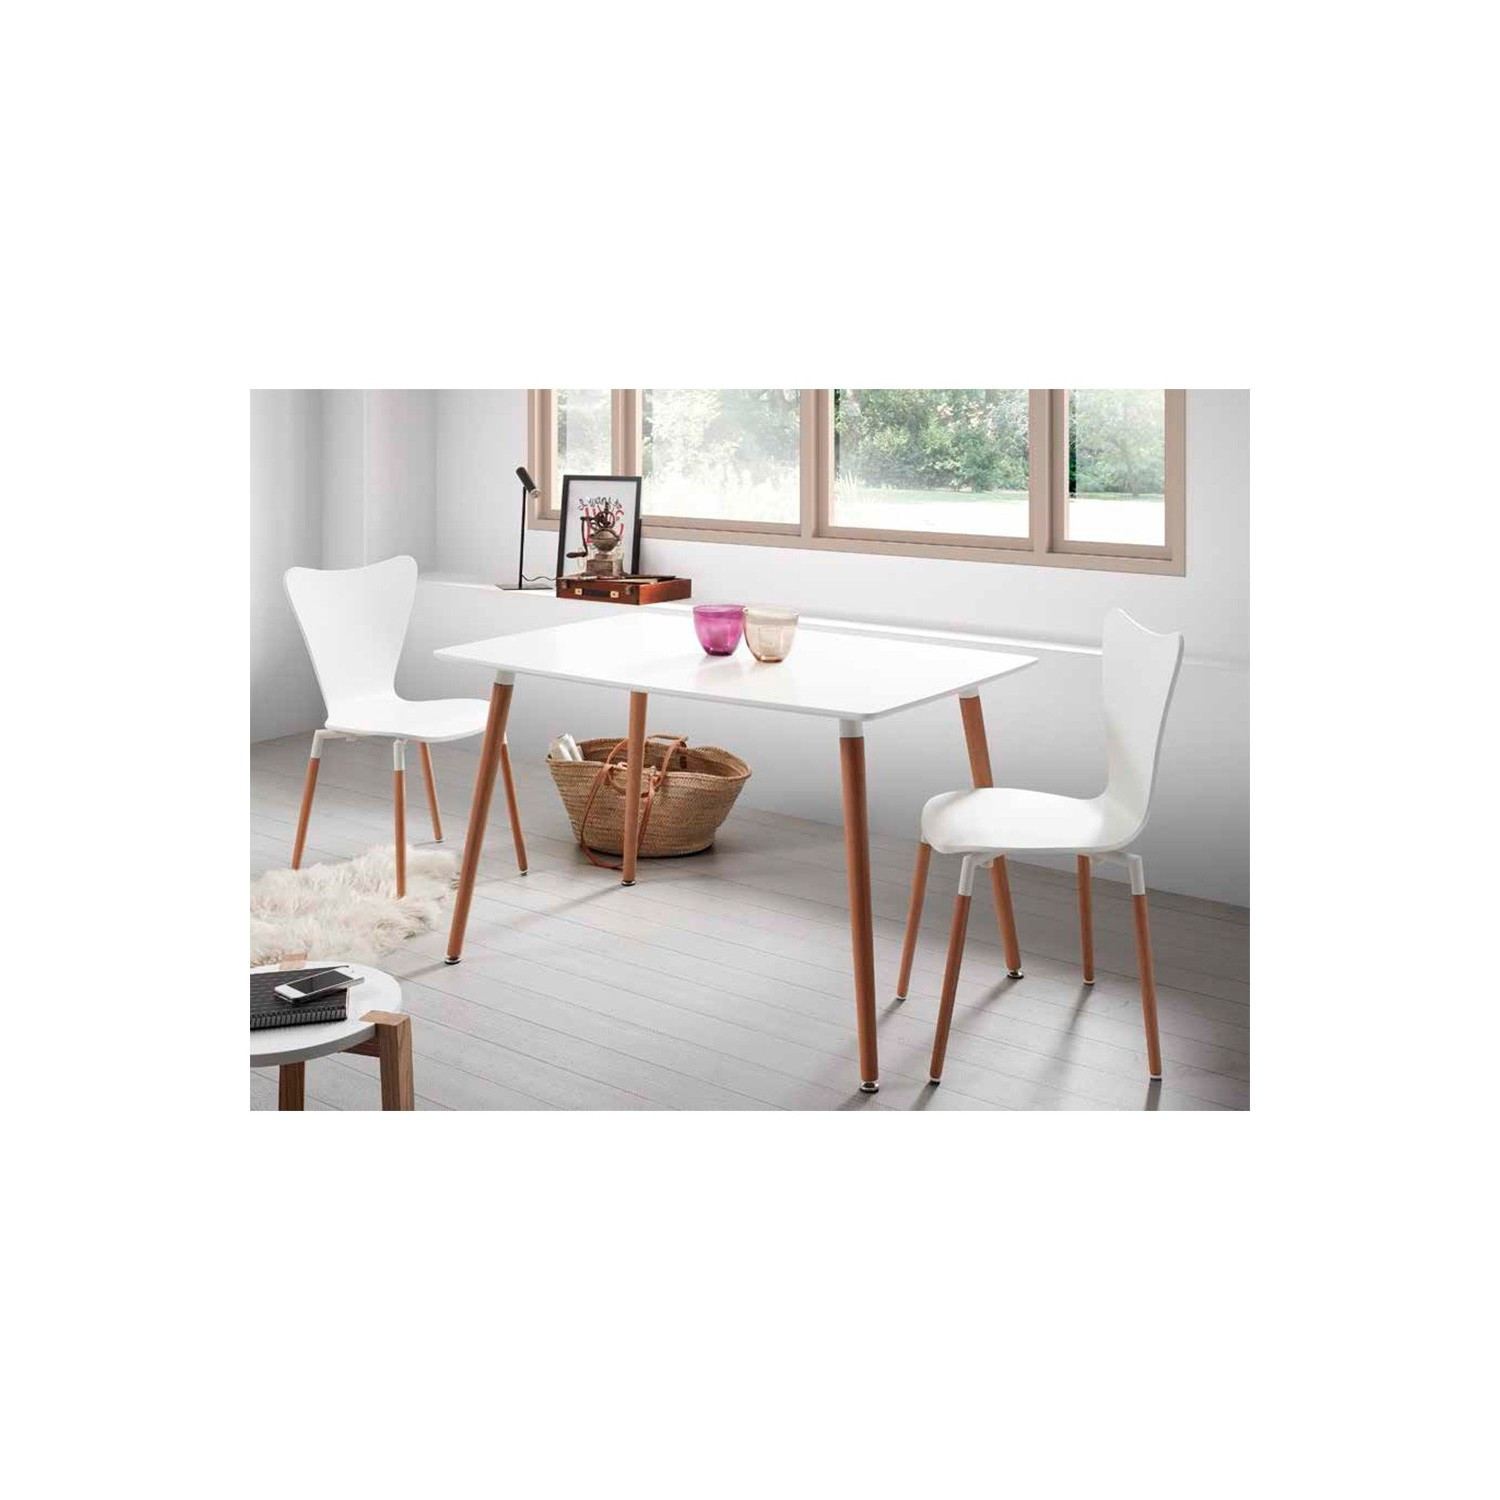 Sillas Comedor Estilo nordico Increíble Edor De Estilo nordico En Color Blanco Of 40  Adorable Sillas Comedor Estilo nordico